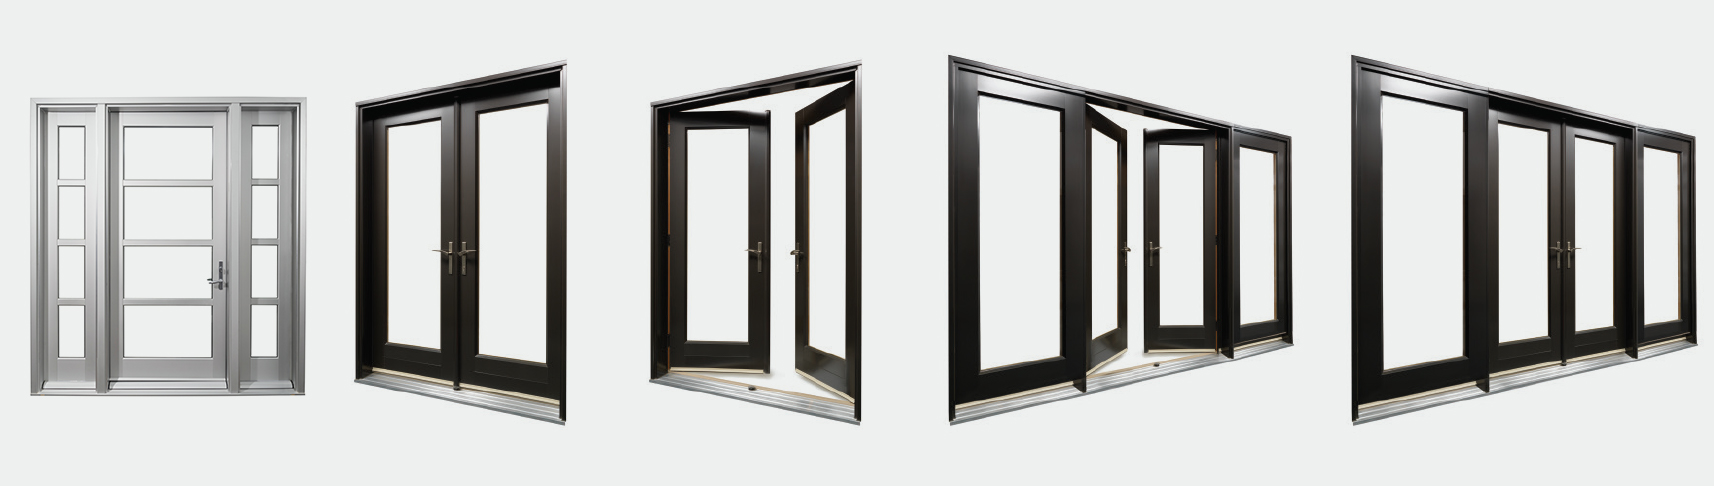 4 different lux aluminum clad door configurations